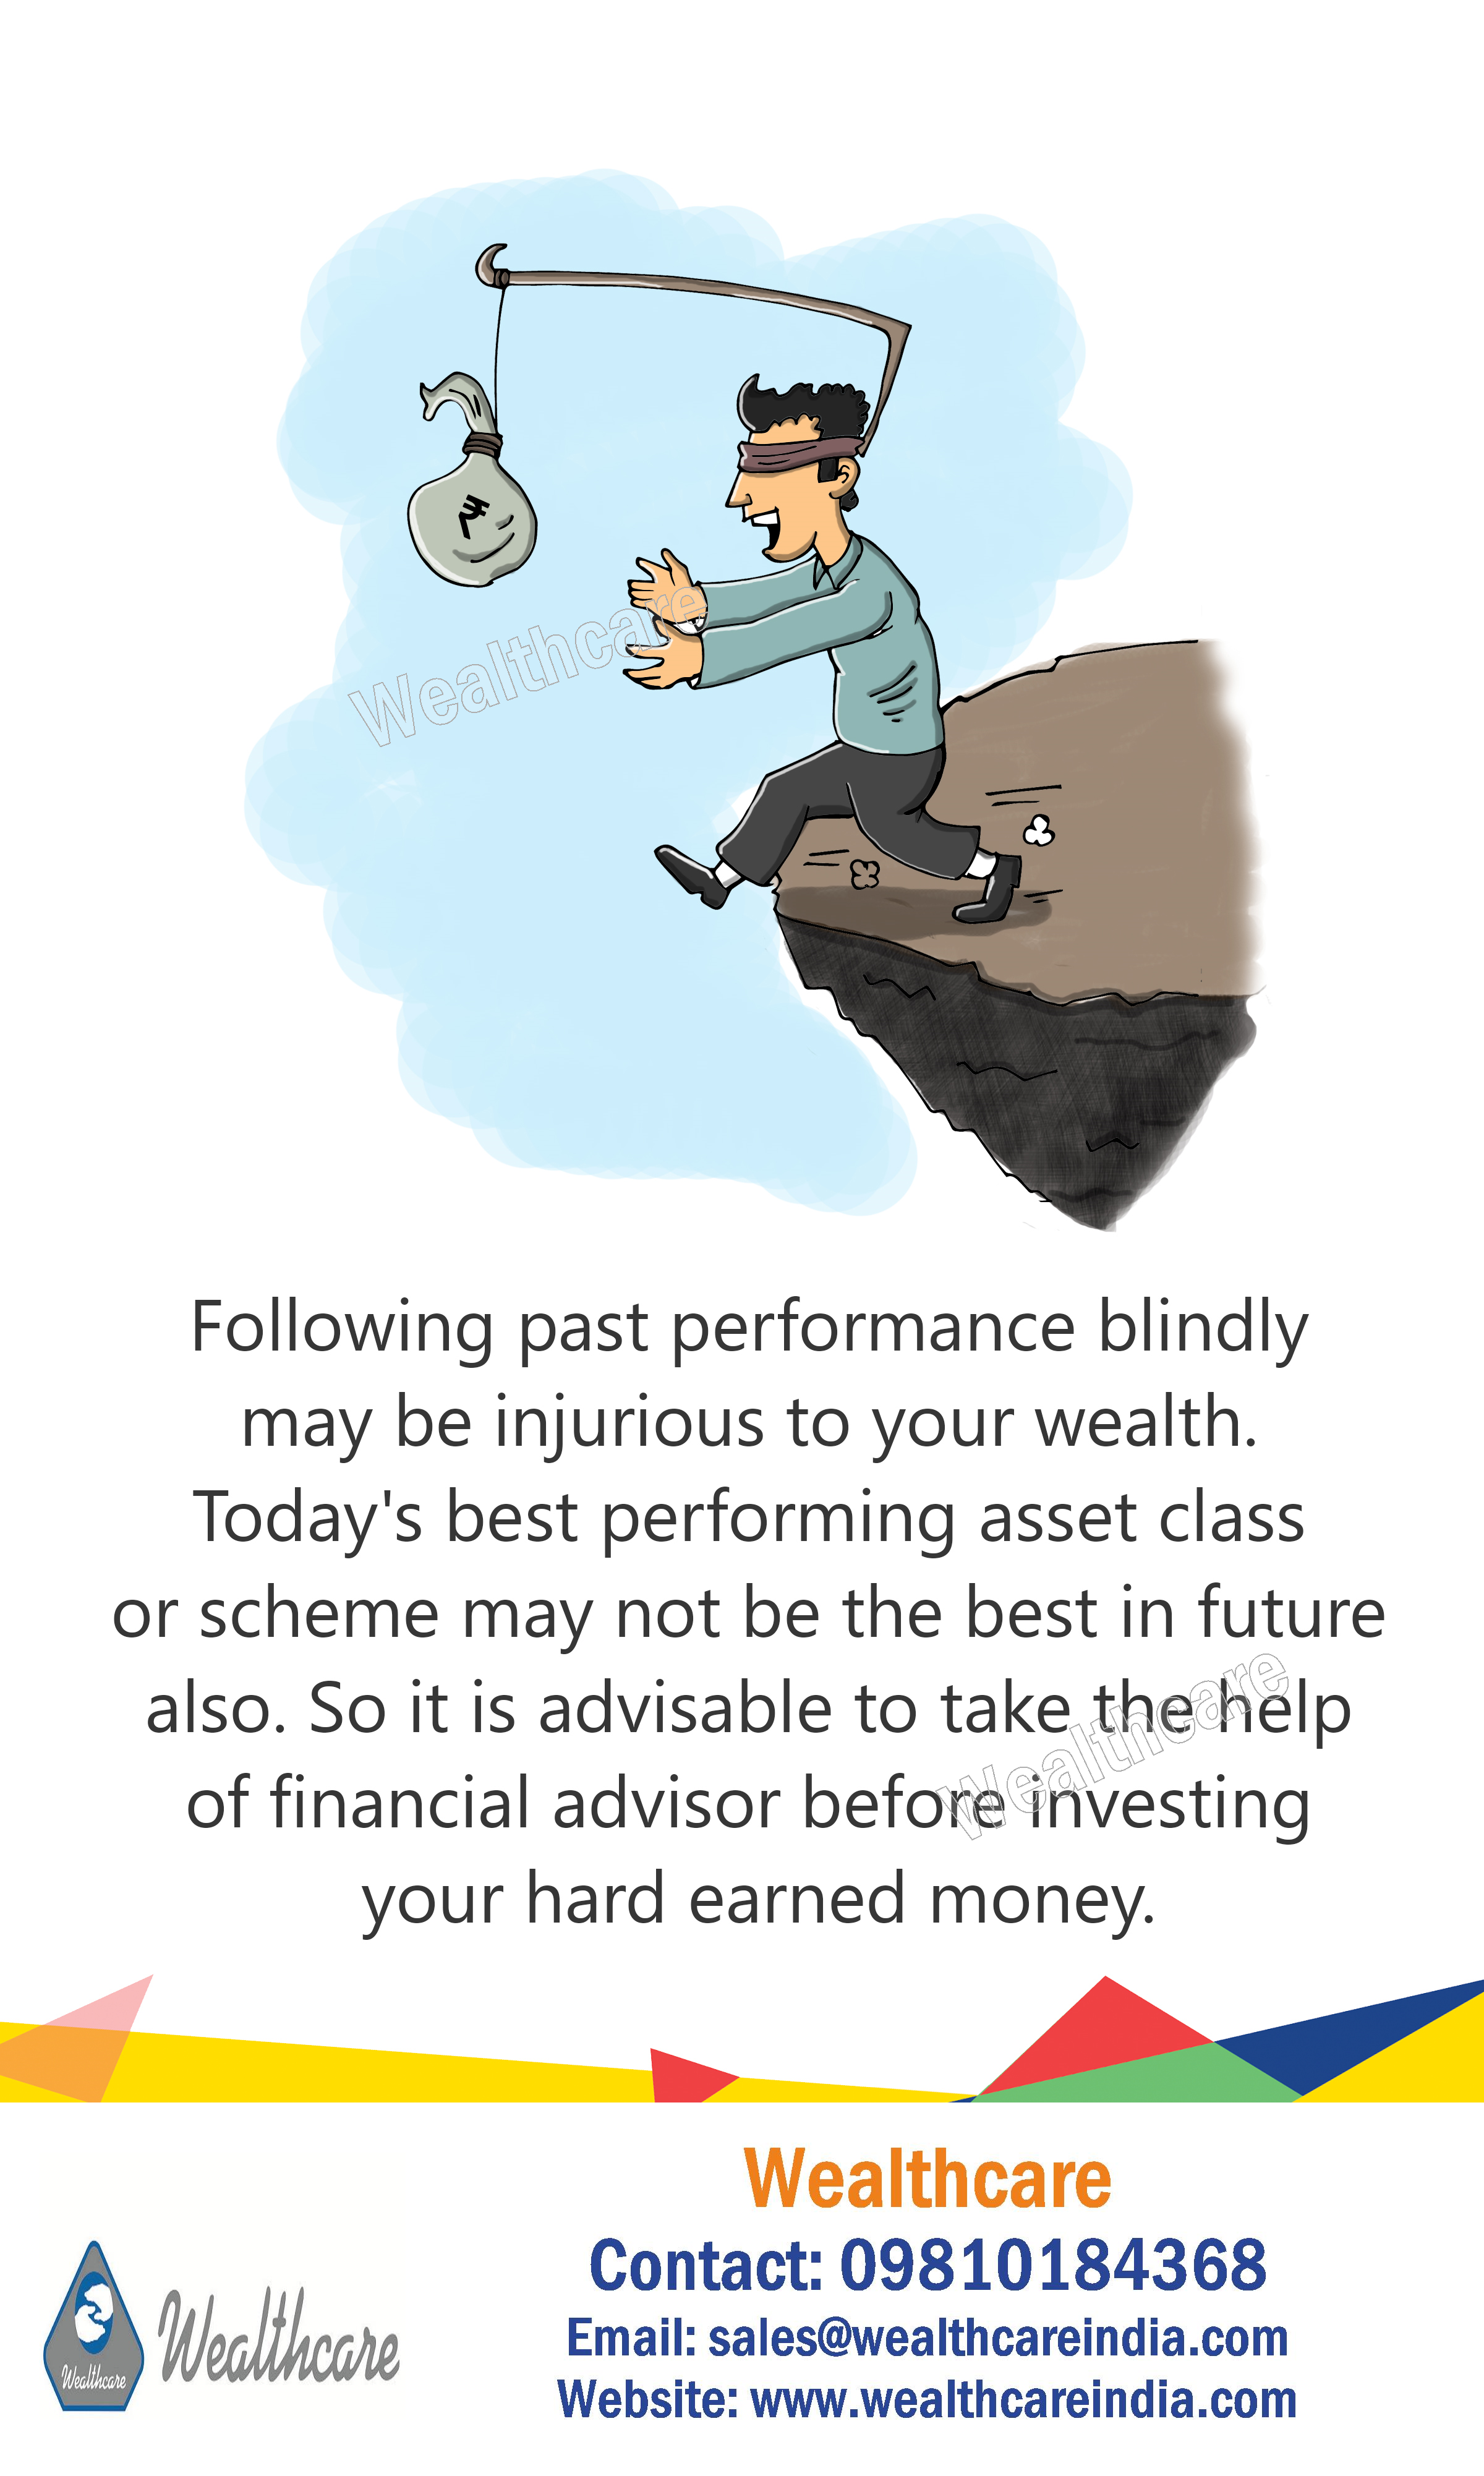 Pin By Monica On Life Insurance Financial Quotes Life Insurance Marketing Financial Advisors